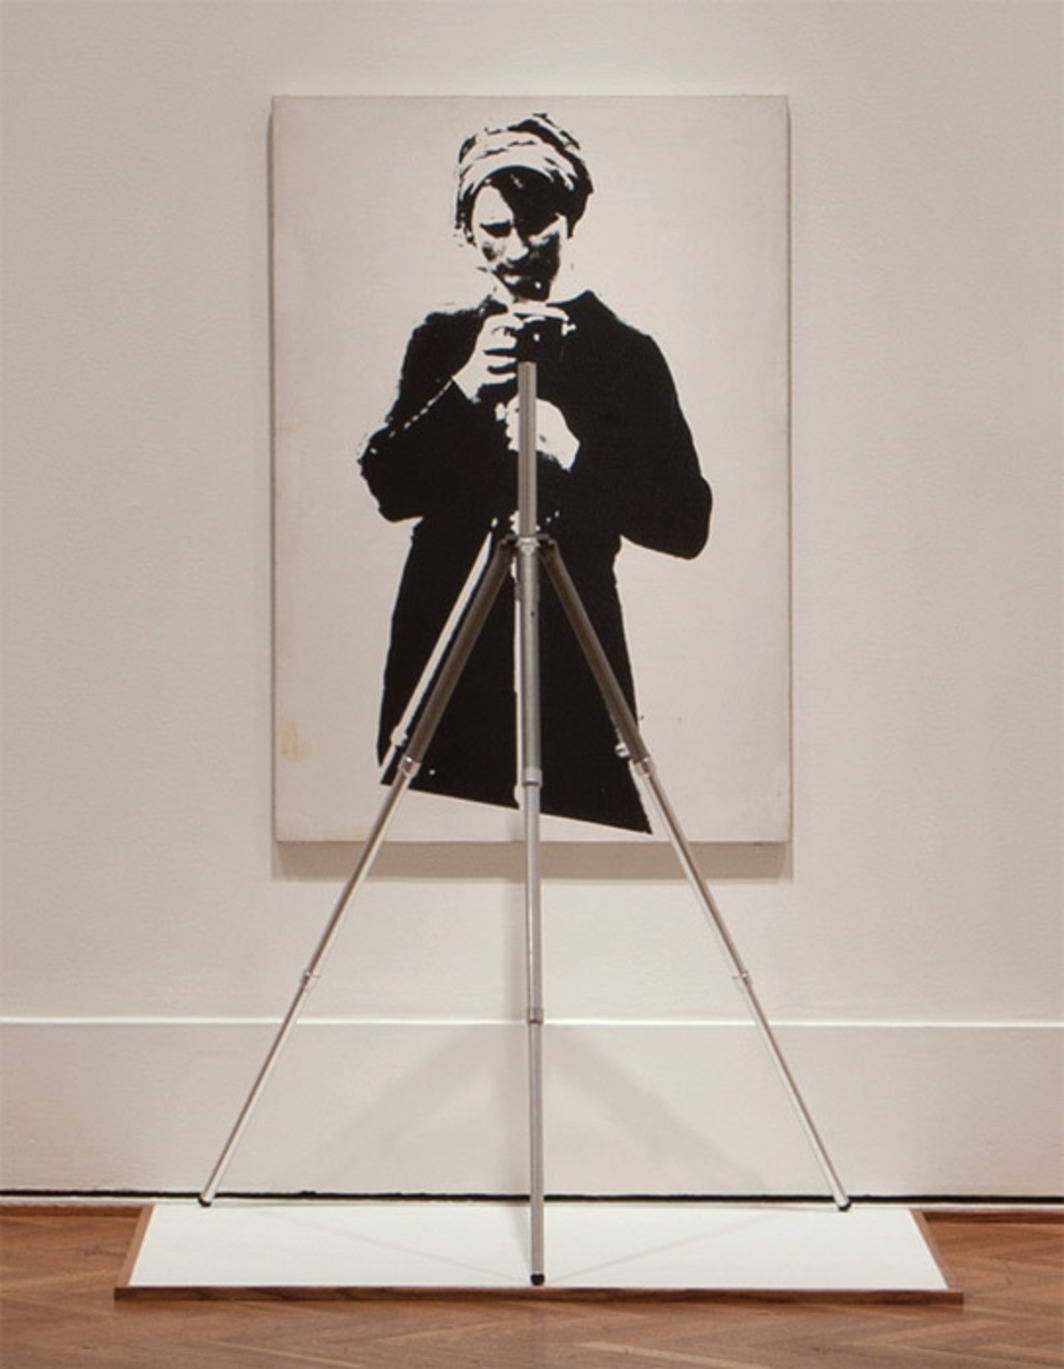 "Marcel Broodthaers, Portrait of Maria Gilissen with Tripod, 1967, gelatin silver emulsion on canvas with tripod, approx. 66 x 43 x 24"". From ""Light Years: Conceptual Art and the Photograph, 1964–1977."""